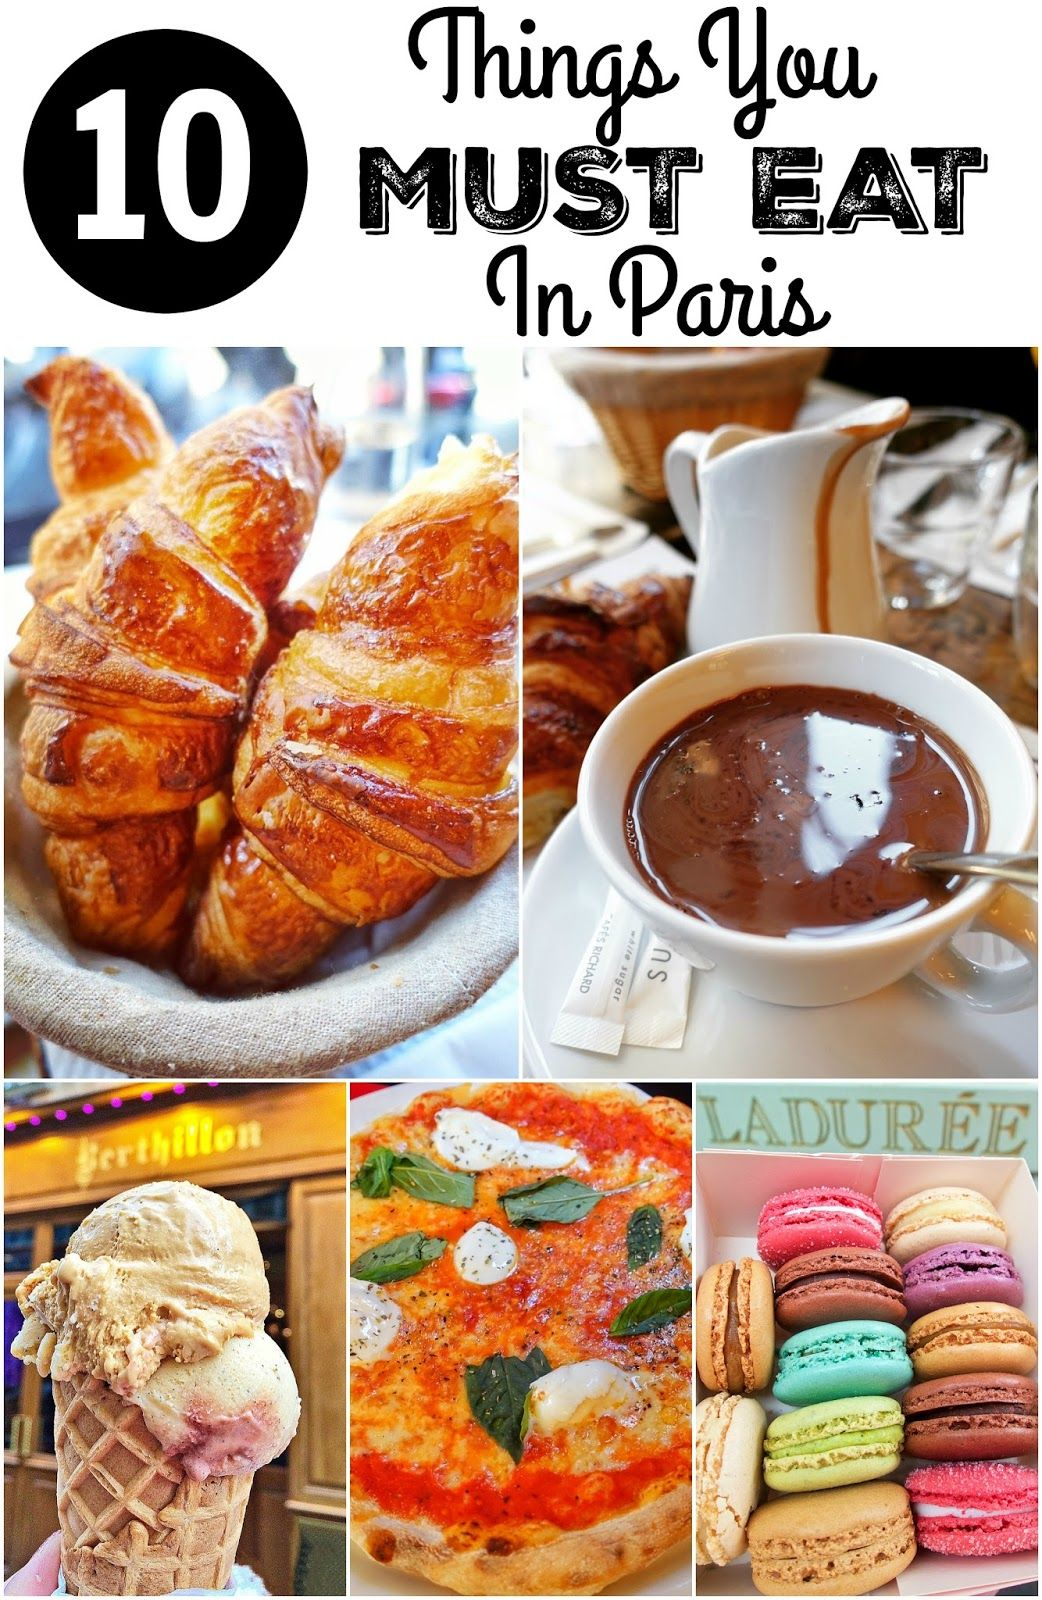 Best Restaurants In Paris 2020 10 things you MUST EAT in Paris! Pin this for a fabulous list of